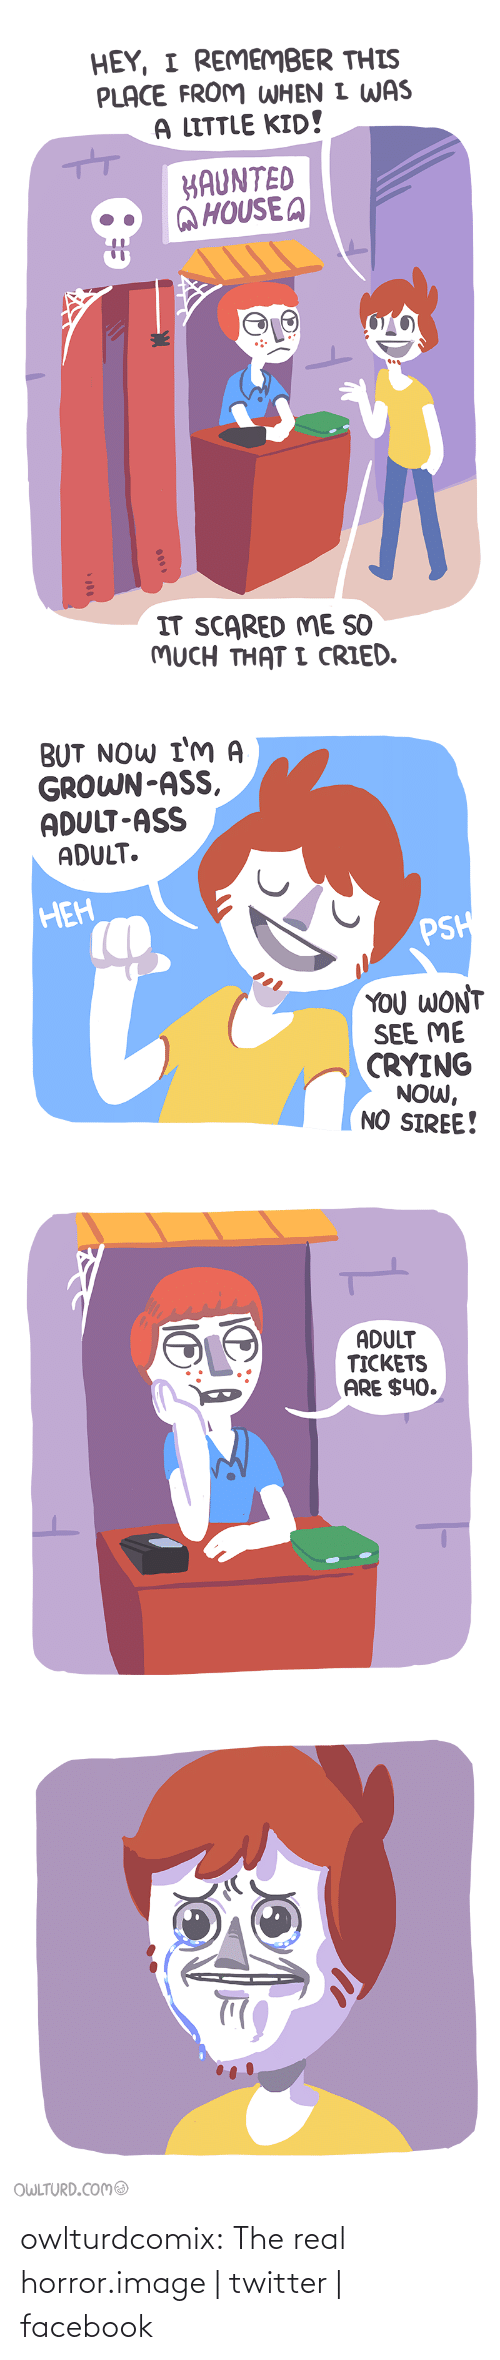 Shenanigansen: HEY, I REMEMBER THIS  PLACE FROM WHEN I WAS  A LITTLE KID!  KAUNTED  @HOUSE A  IT SCARED ME SO  MUCH THAT I CRIED.  0000   BUT NOW I'M A  GROWN-ASS,  ADULT-ASS  ADULT.  НЕН  PSH  YOU WONT  SEE ME  CRYING  NOW,  NO SIREE!   ADULT  TICKETS  ARE $40.   OWLTURD.COMO owlturdcomix:  The real horror.image | twitter | facebook